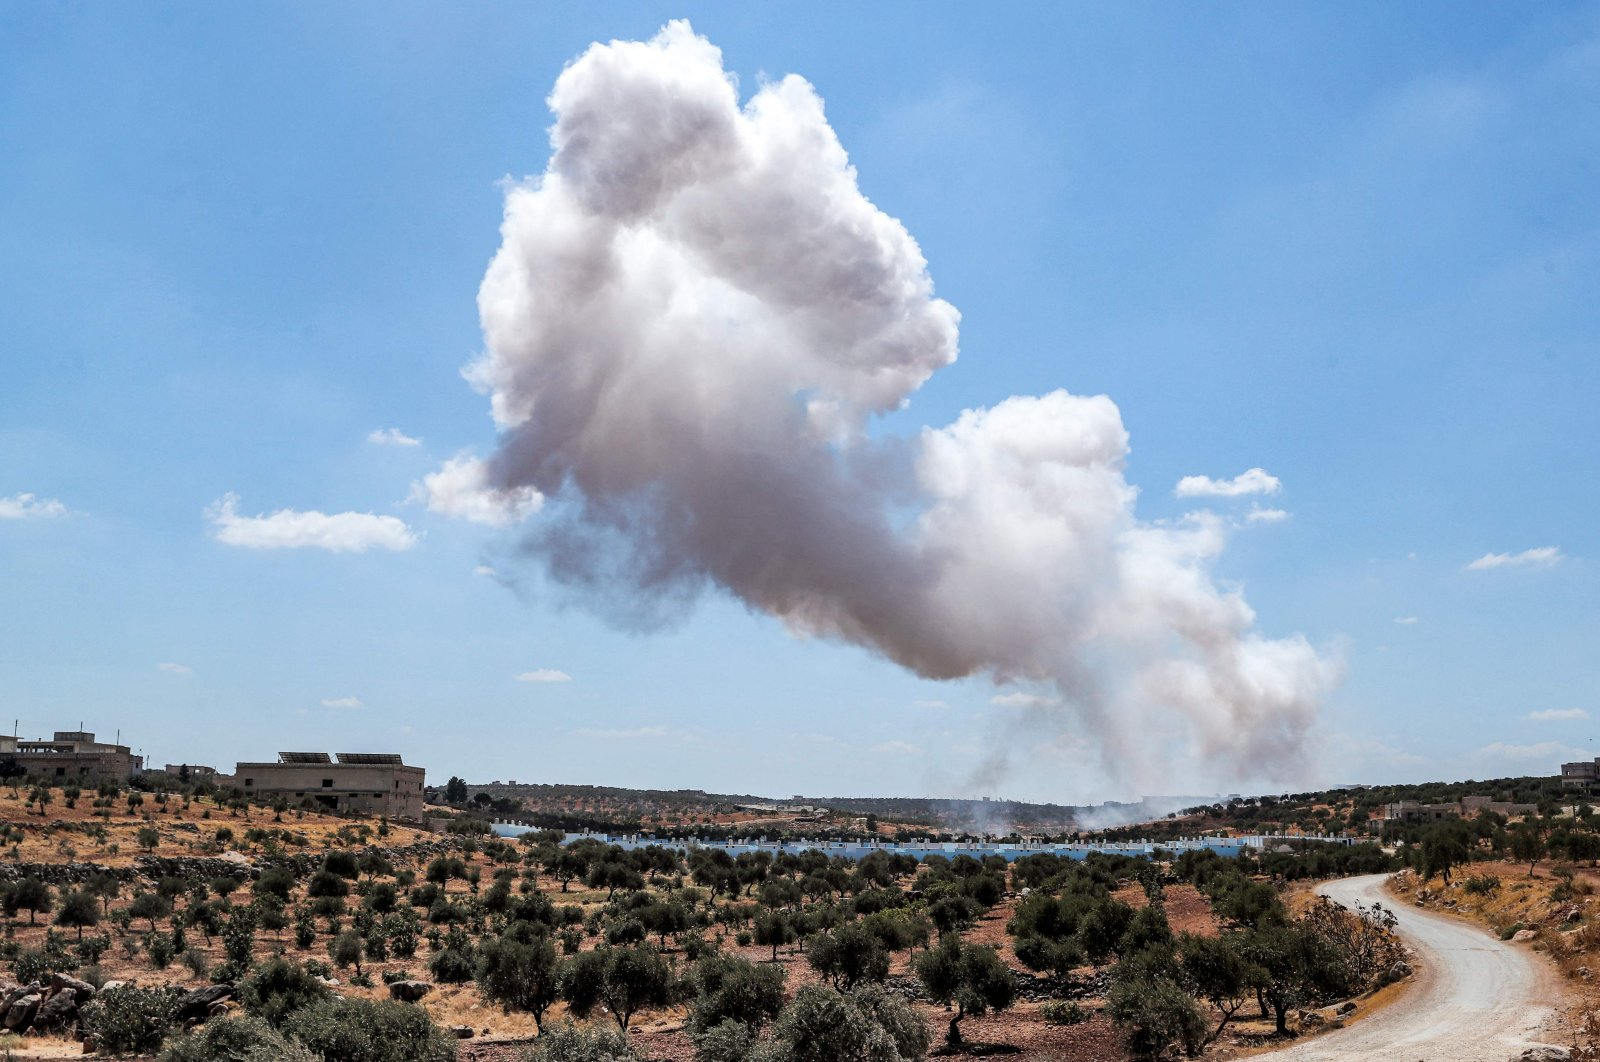 A smoke plume rises after an aerial bombardment near a make-shift camp for displaced Syrians near the town of Kafraya, north of Syria's Idlib province, Syria, Sept. 7, 2021. (AFP Photo)